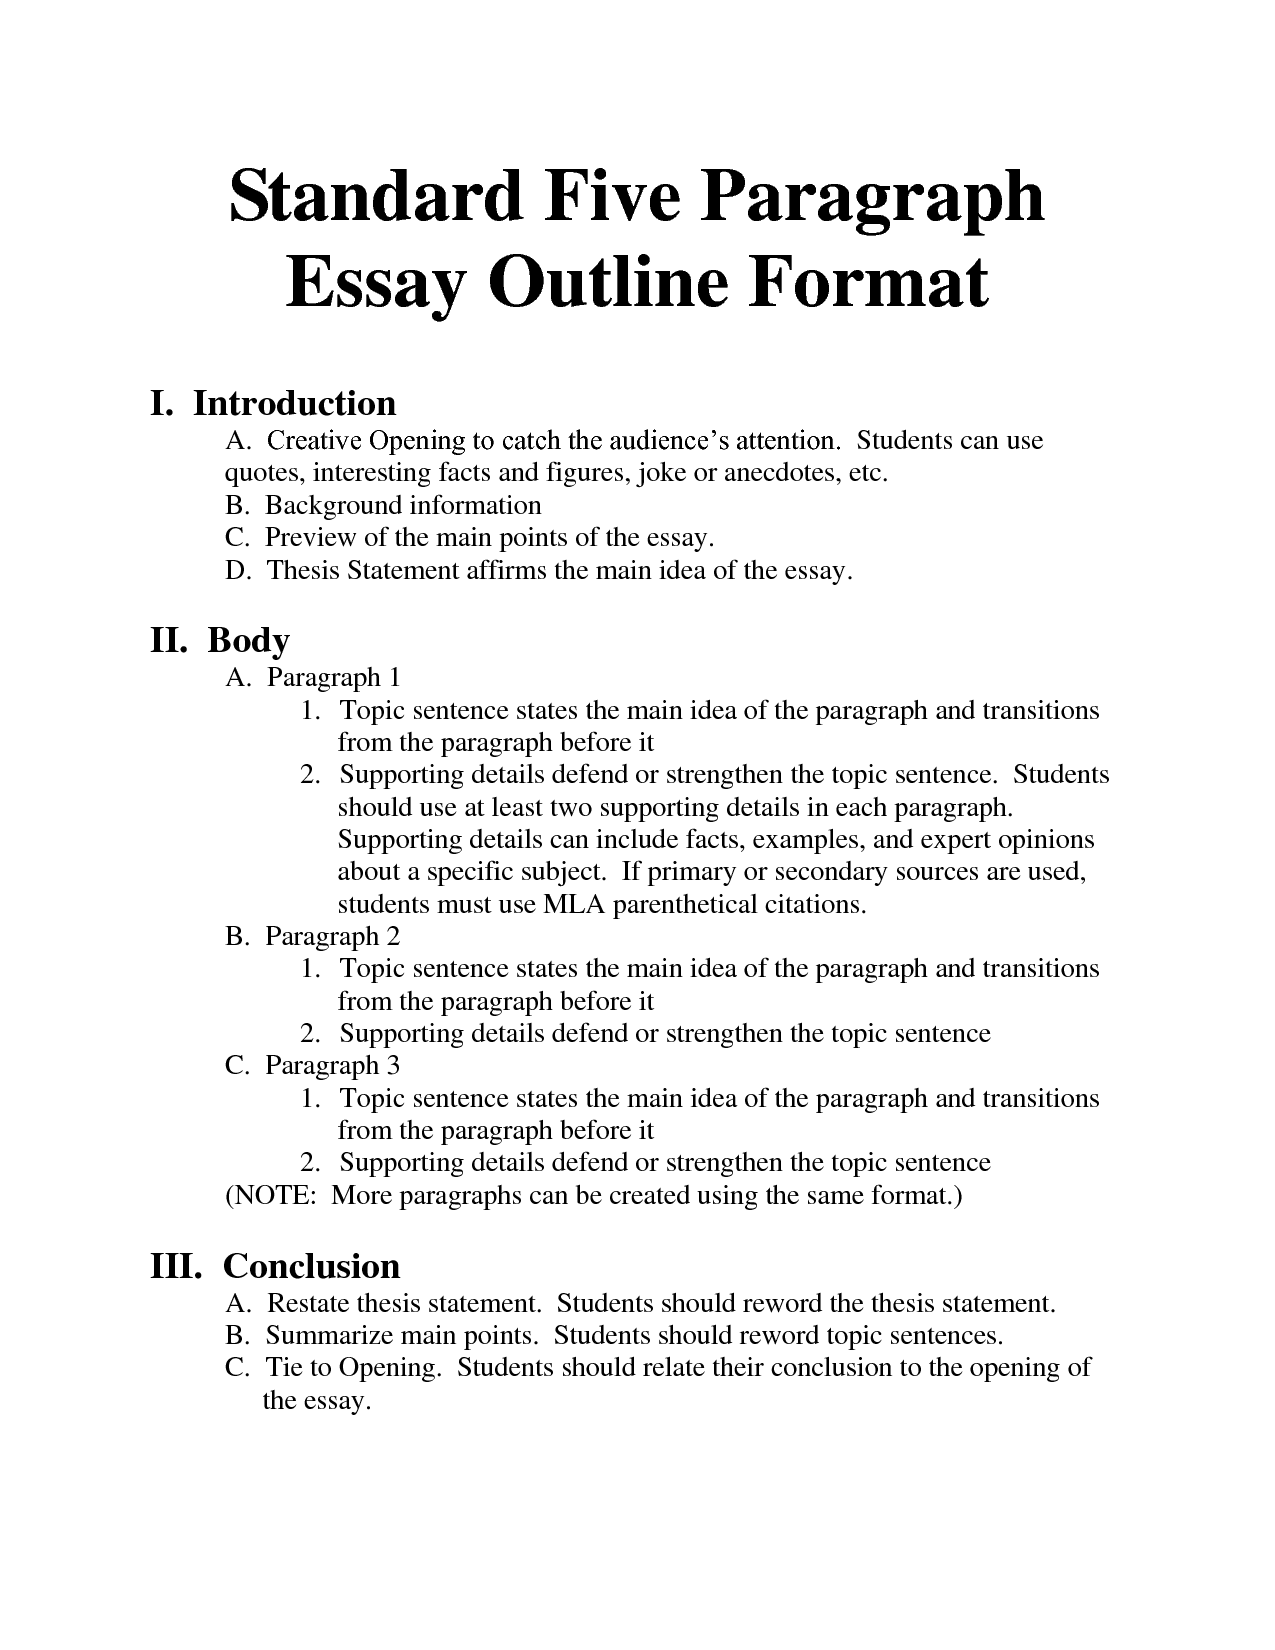 How to write a proper report outline